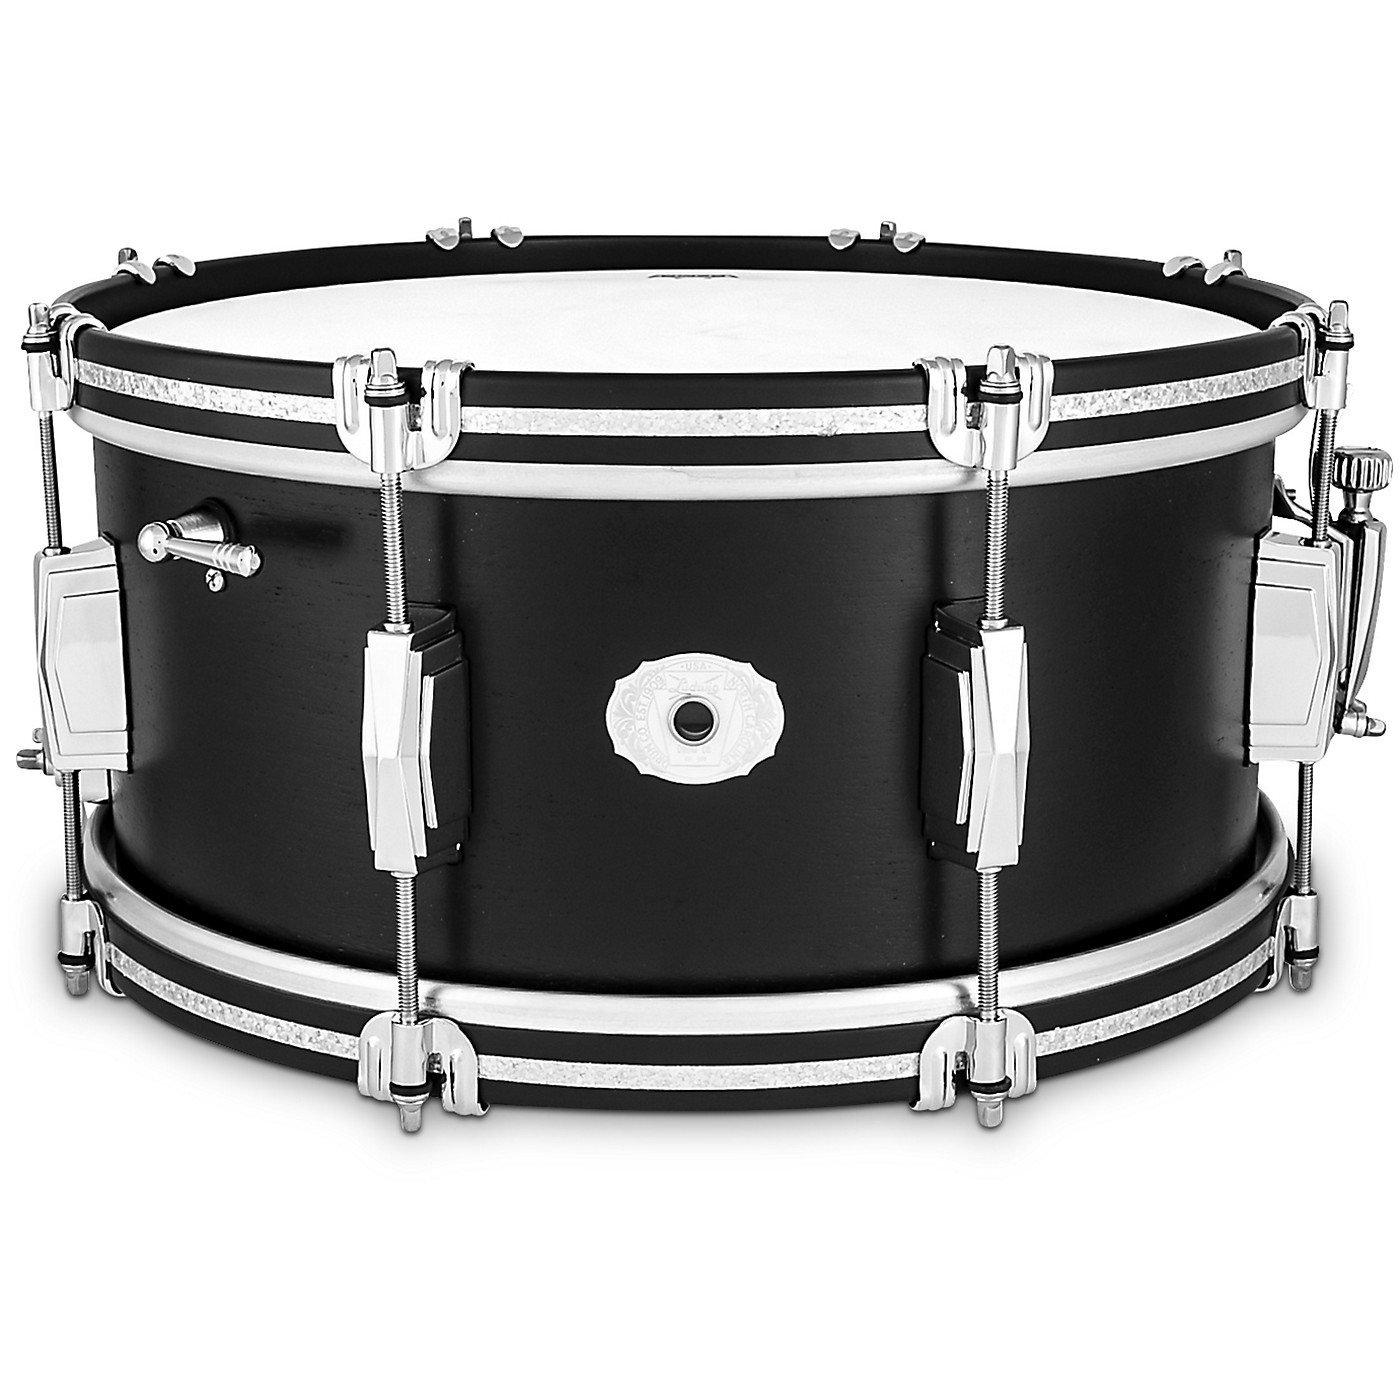 Ludwig Limited Edition Legacy Mahogany 14x6.5 Snare Drum- Black Cat thumbnail